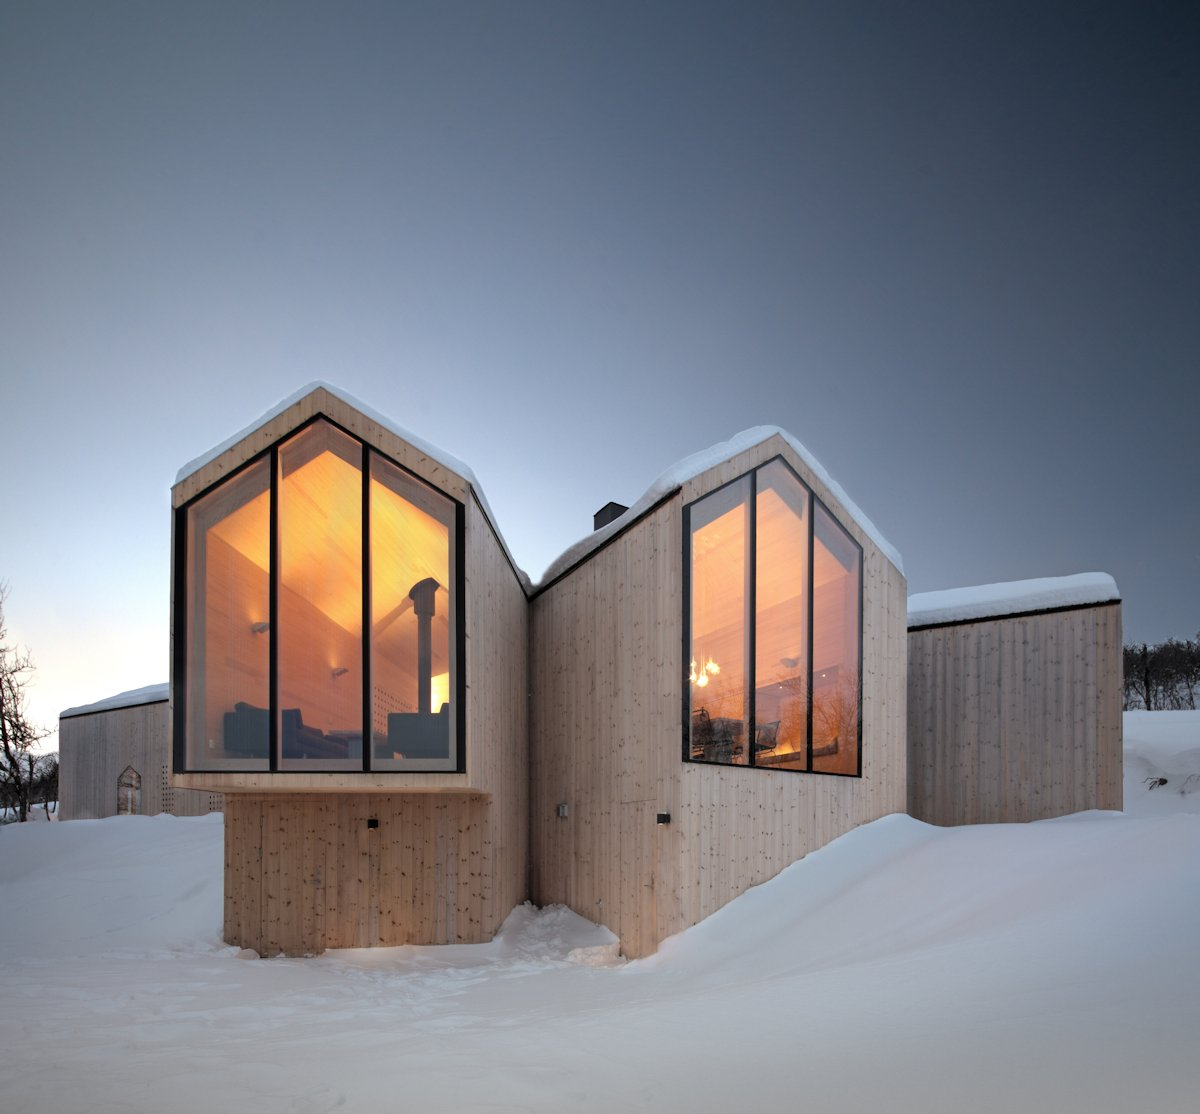 Large Windows, Lighting, Wood Cladding, Family Holiday Lodge in Havsdalen, Norway